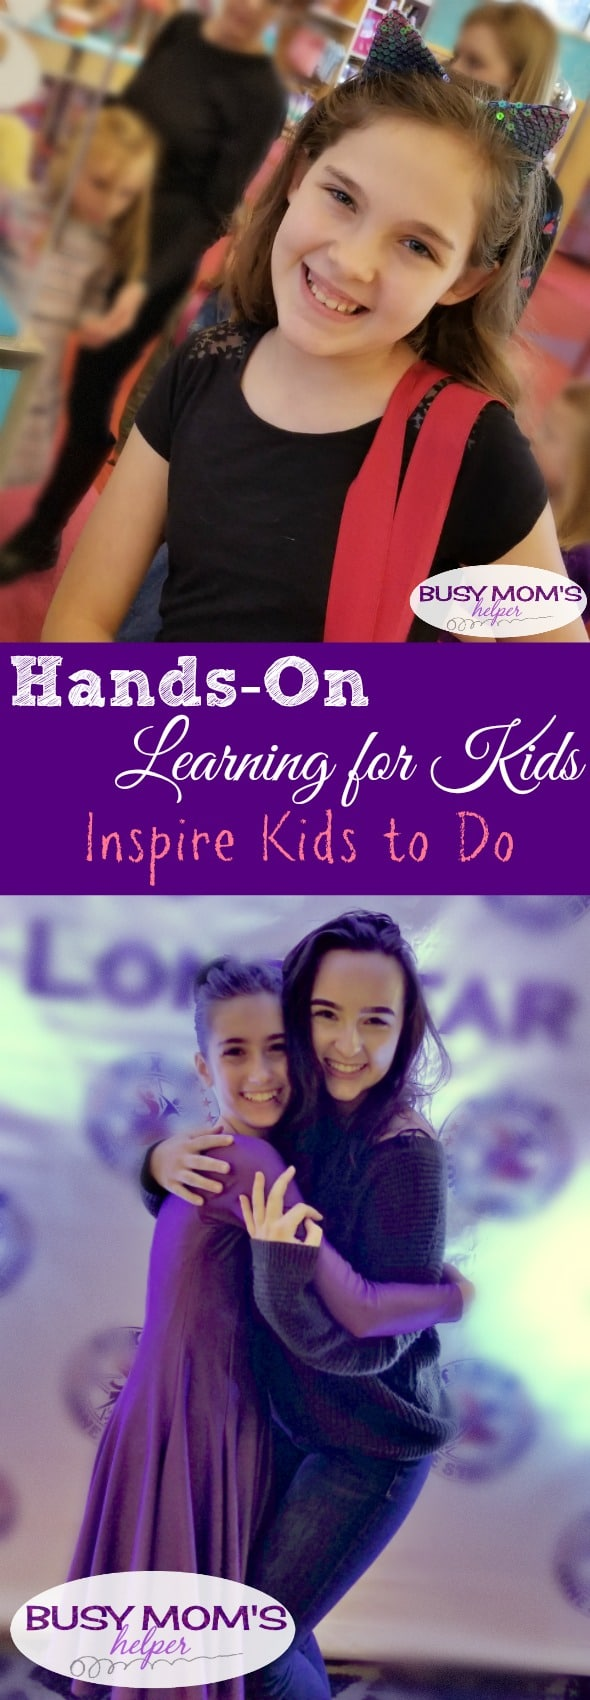 Hands-On Learning for Kids with 4-H's 'Inspire to Do' #ad #4HWellness360 #30DaysofDoing #IC